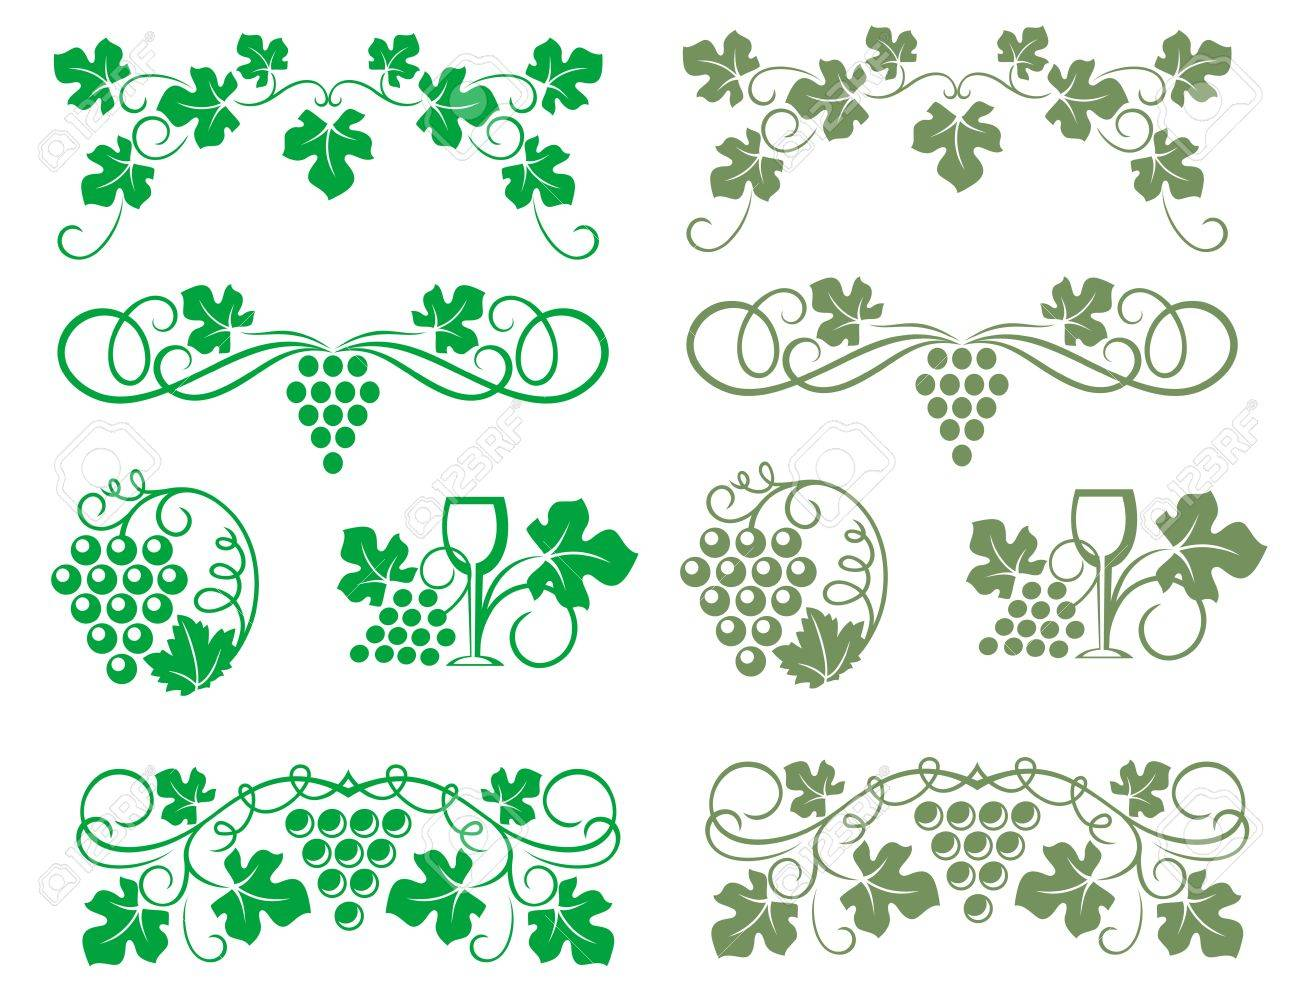 Grape swirls and elements for wine or viticulture industry design Stock Vector - 17441931